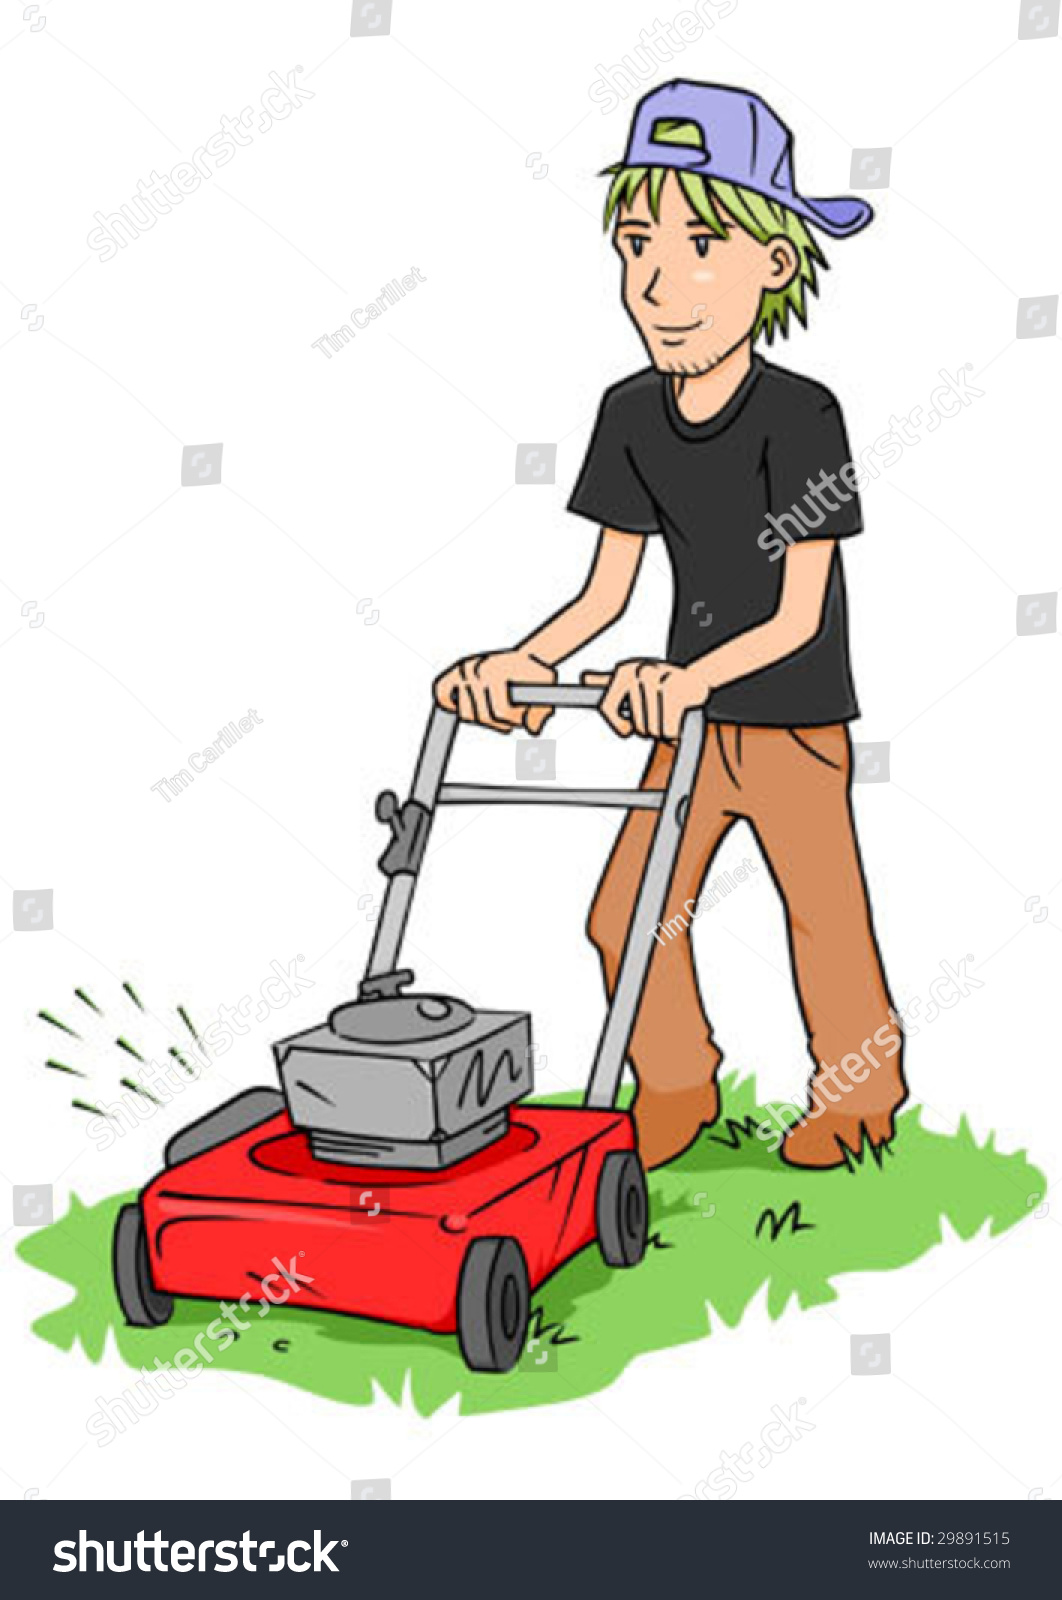 Young Man Cutting Grass Push Lawn Stock Vector 29891515